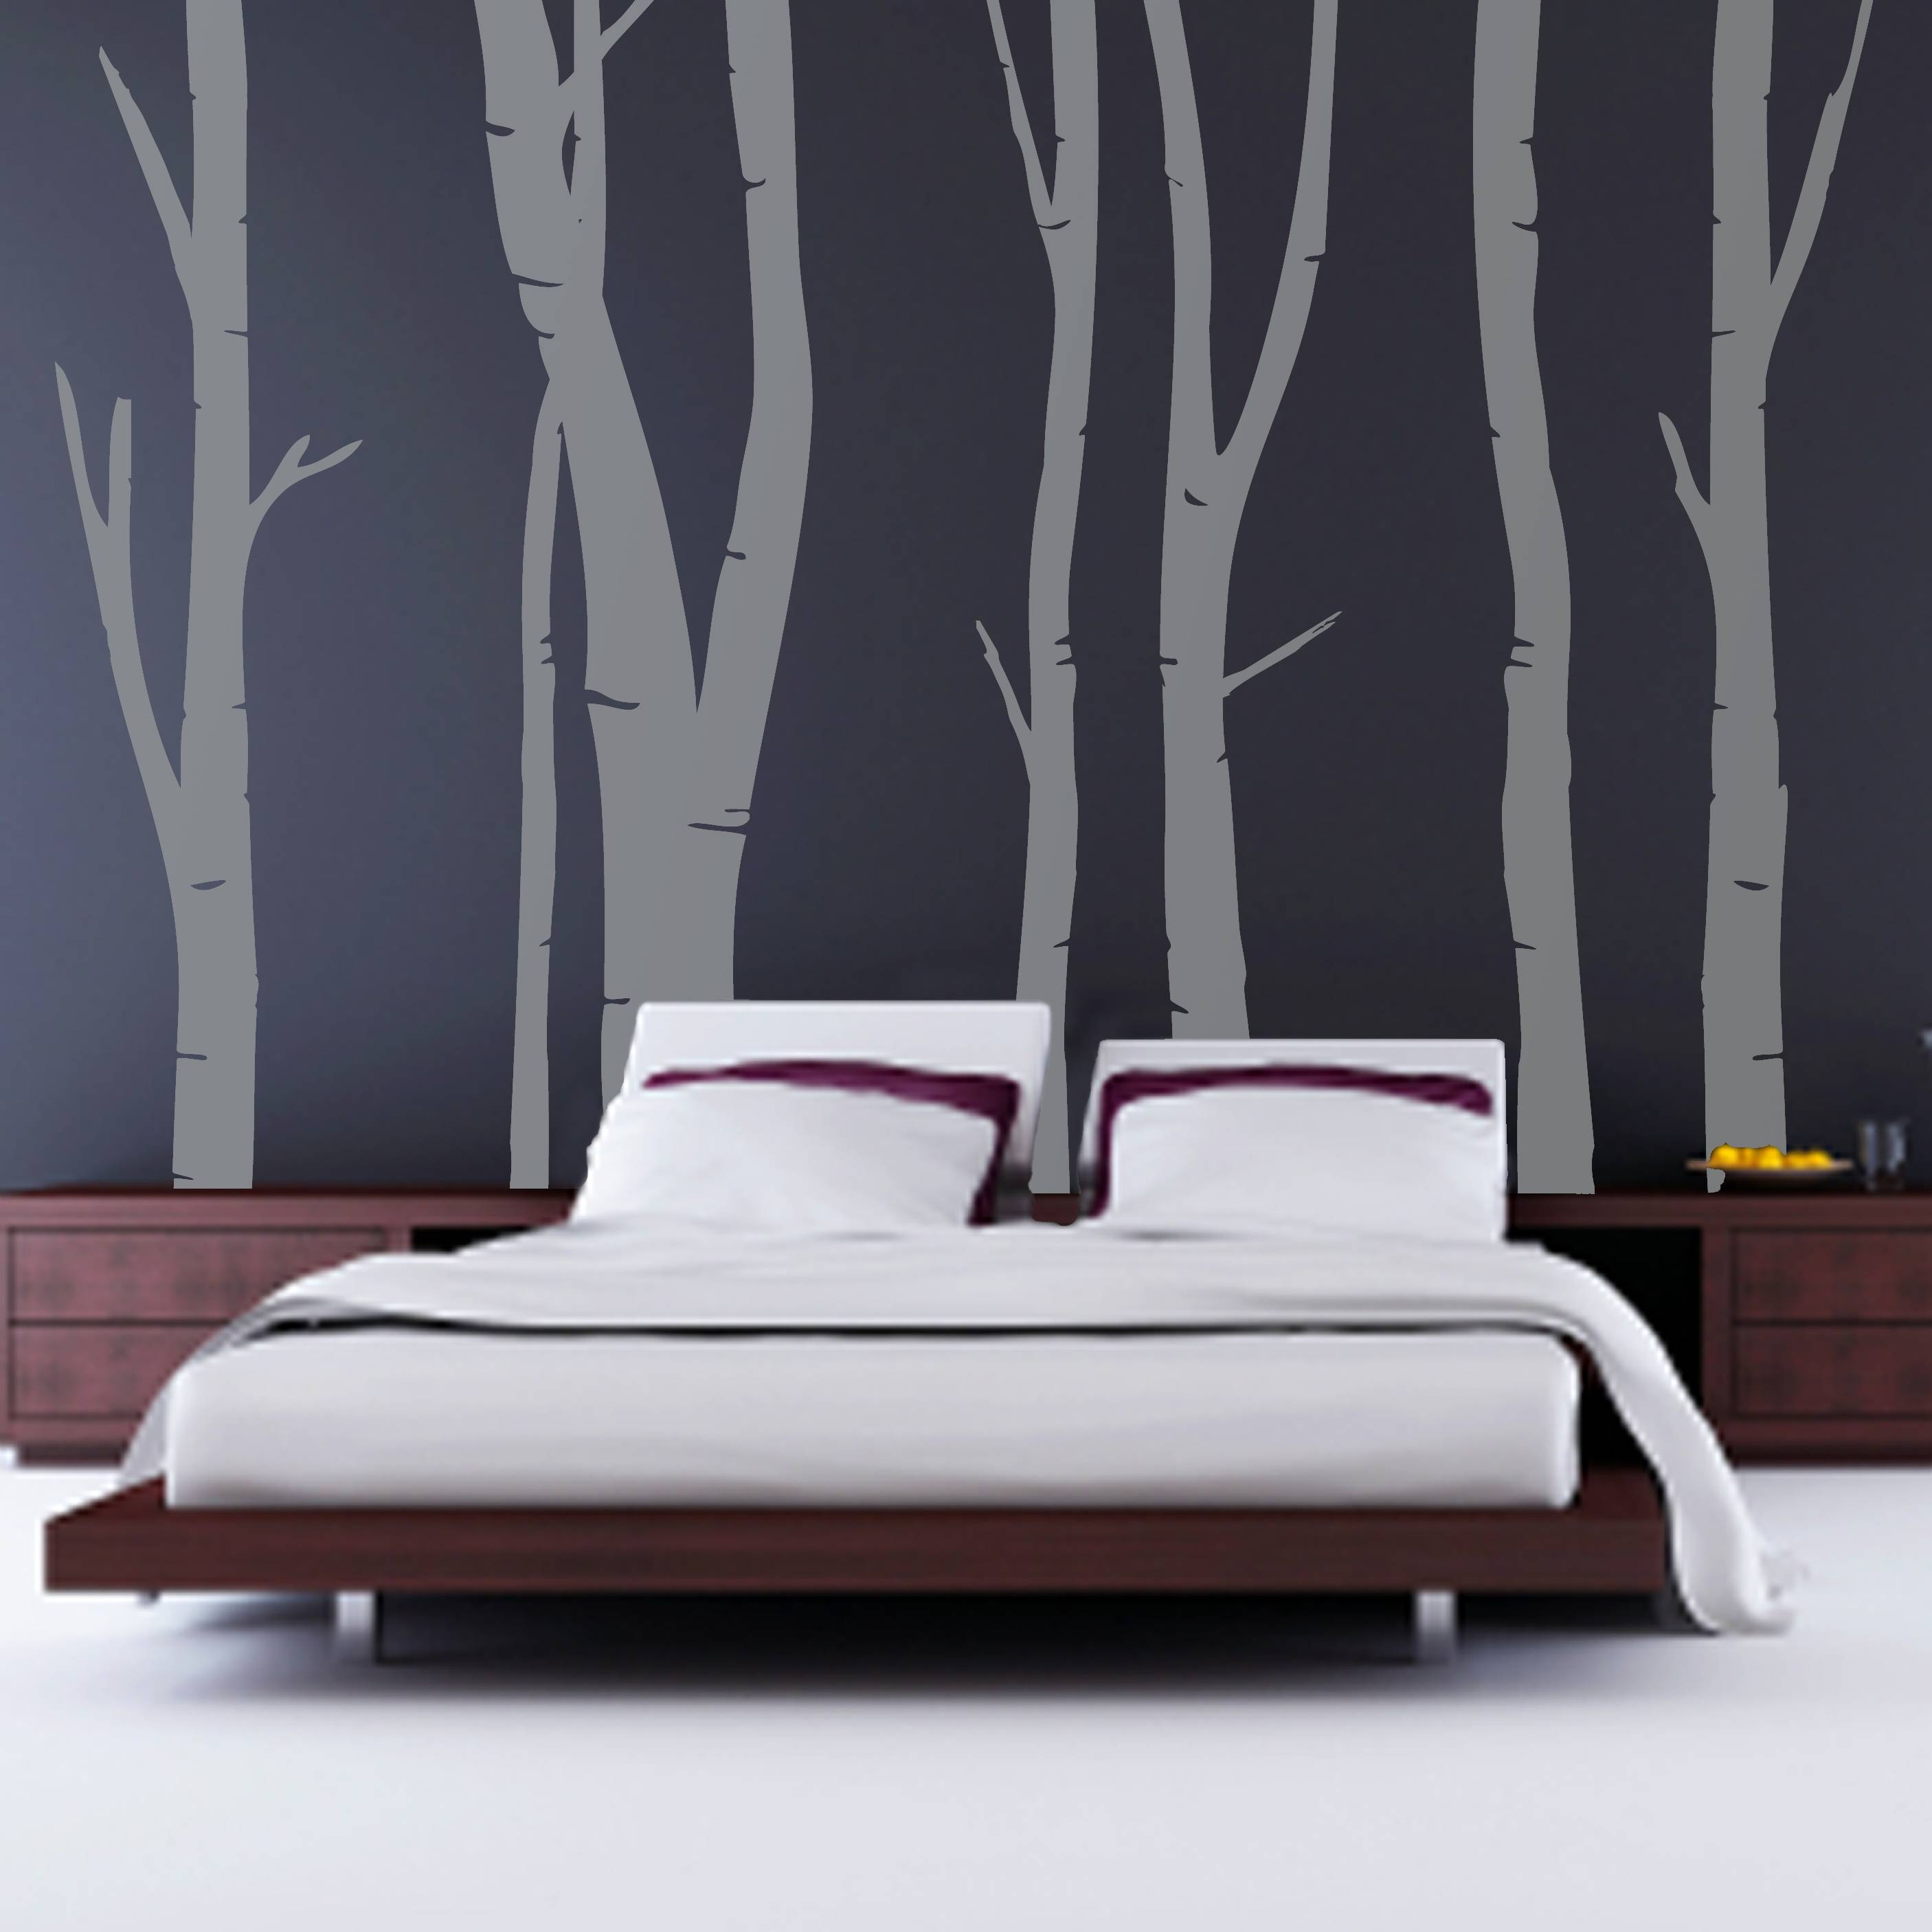 Cheap Bedroom Wall Art Ideas Simple Bedroom Art Ideas Wall – Home Regarding Recent Wall Art For Bedrooms (View 10 of 20)